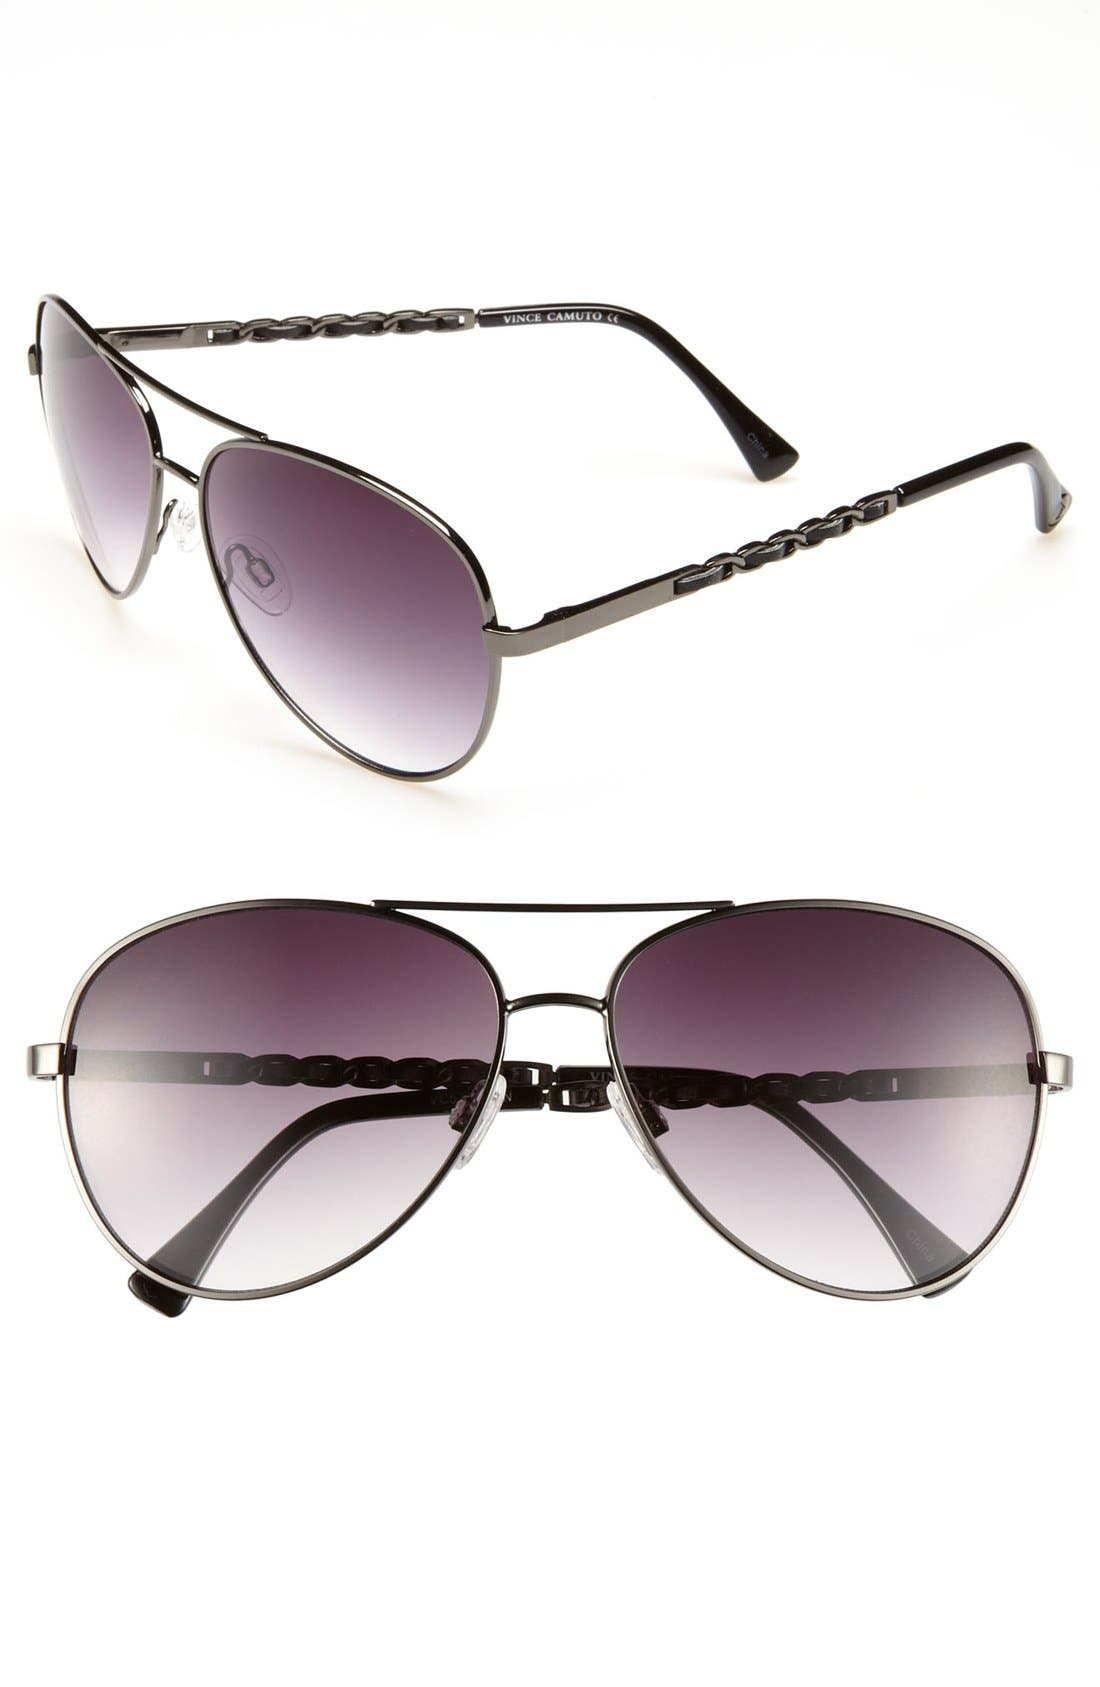 Main Image - Vince Camuto Metal & Faux Leather 60mm Aviator Sunglasses